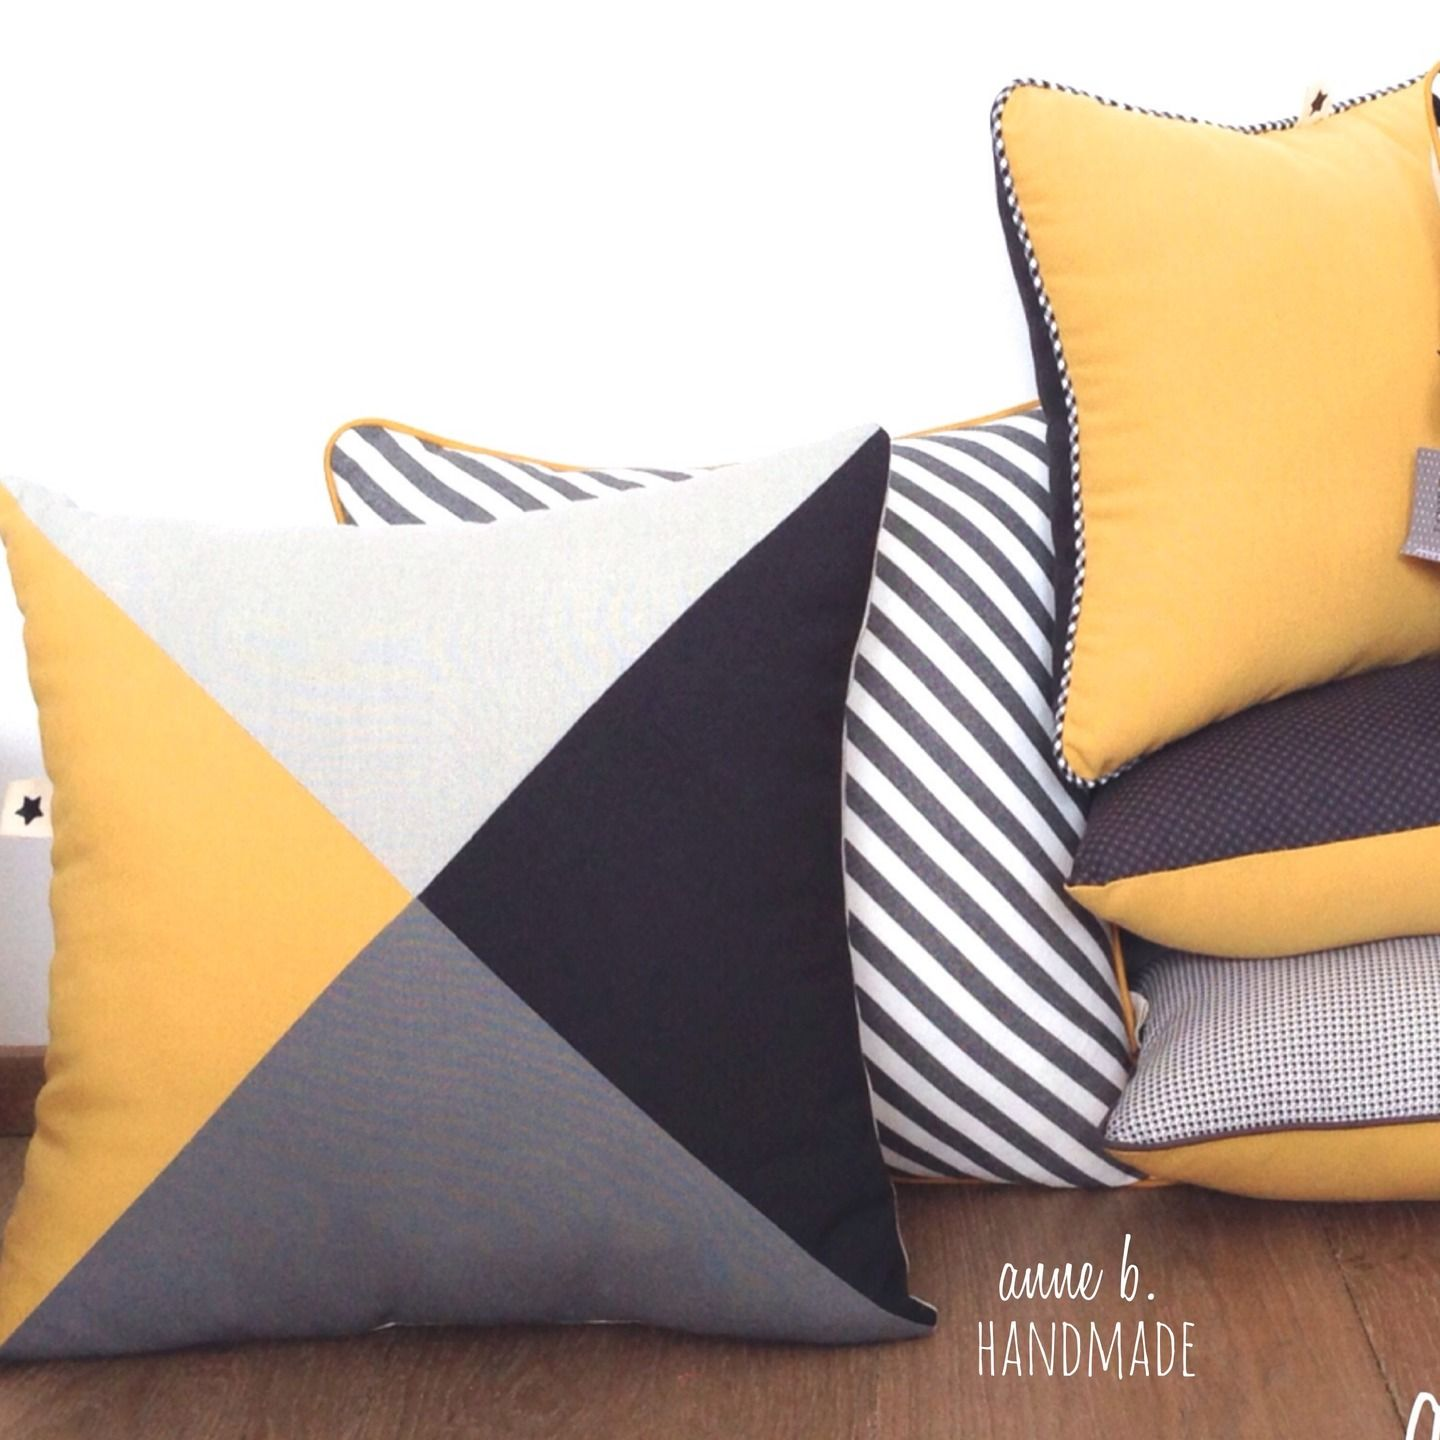 housse de coussin 4 trine yellow 40 x 40 cm face triangles anthracite gris perle gris moyen. Black Bedroom Furniture Sets. Home Design Ideas